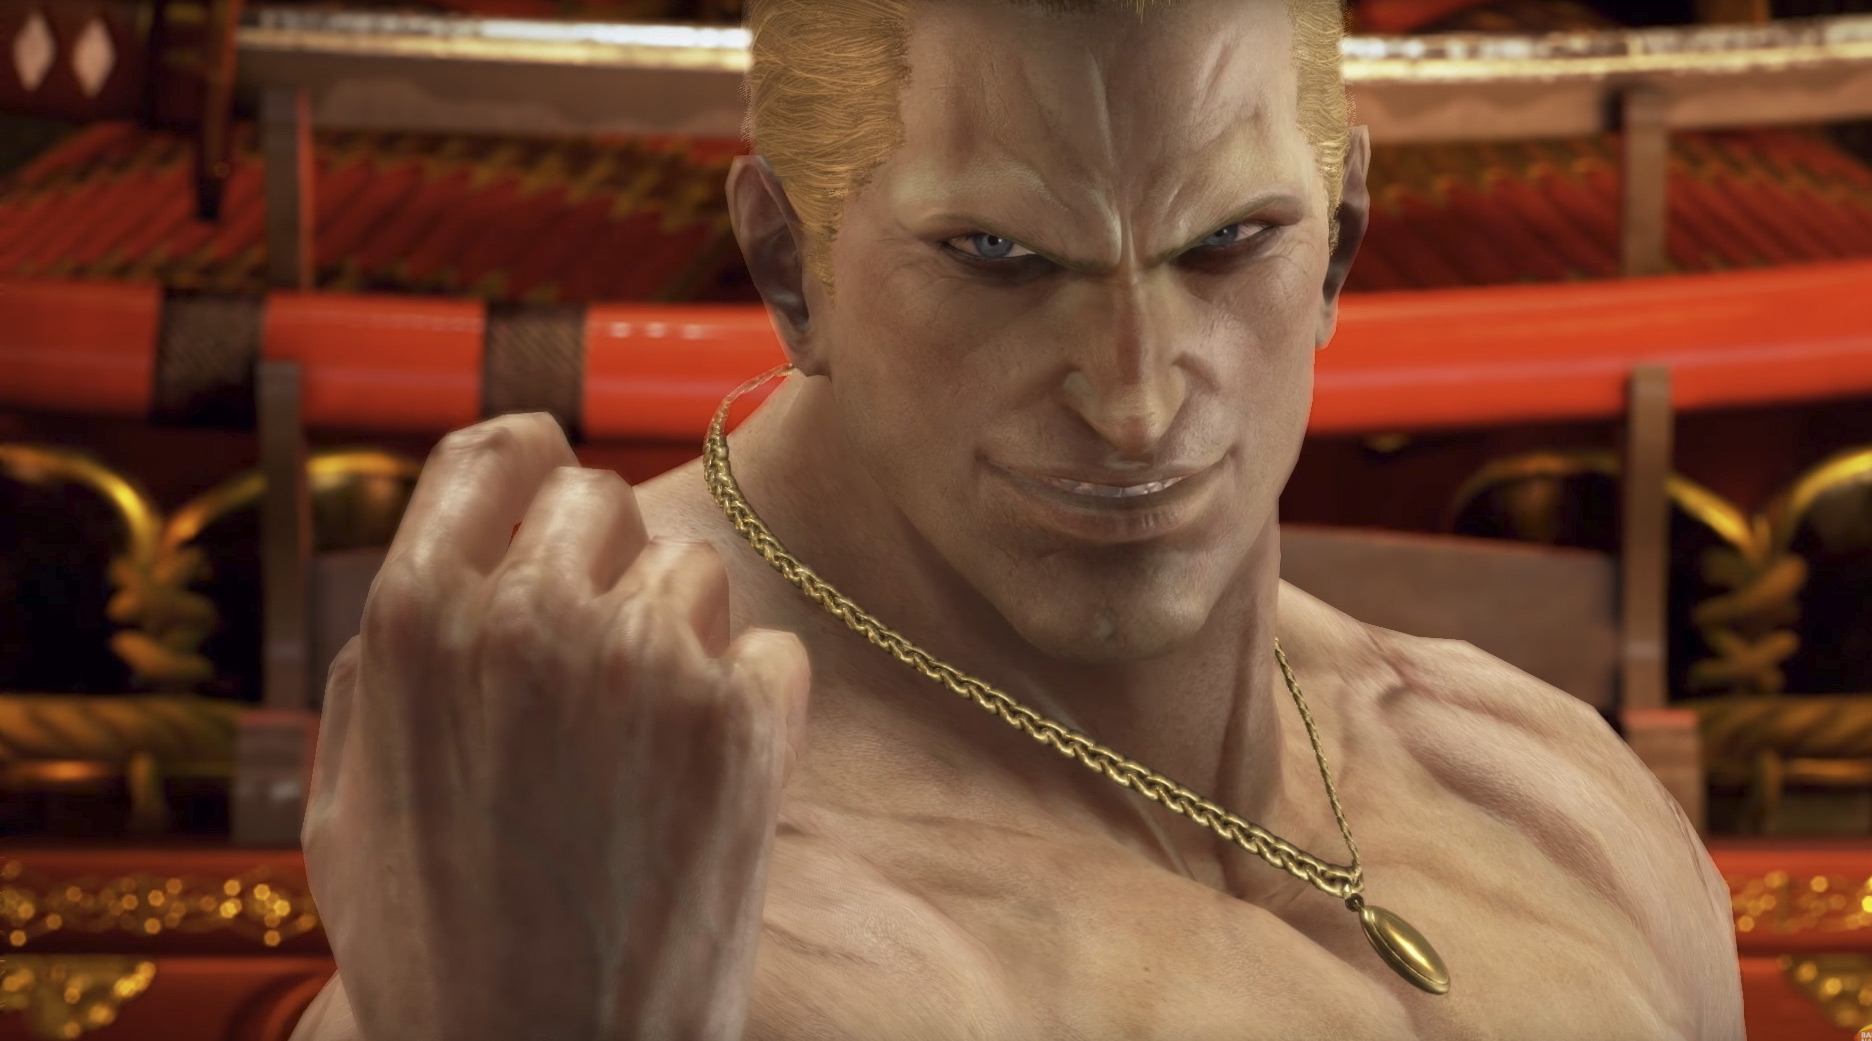 Geese Howard Joins the Fray in Tekken 7 Today